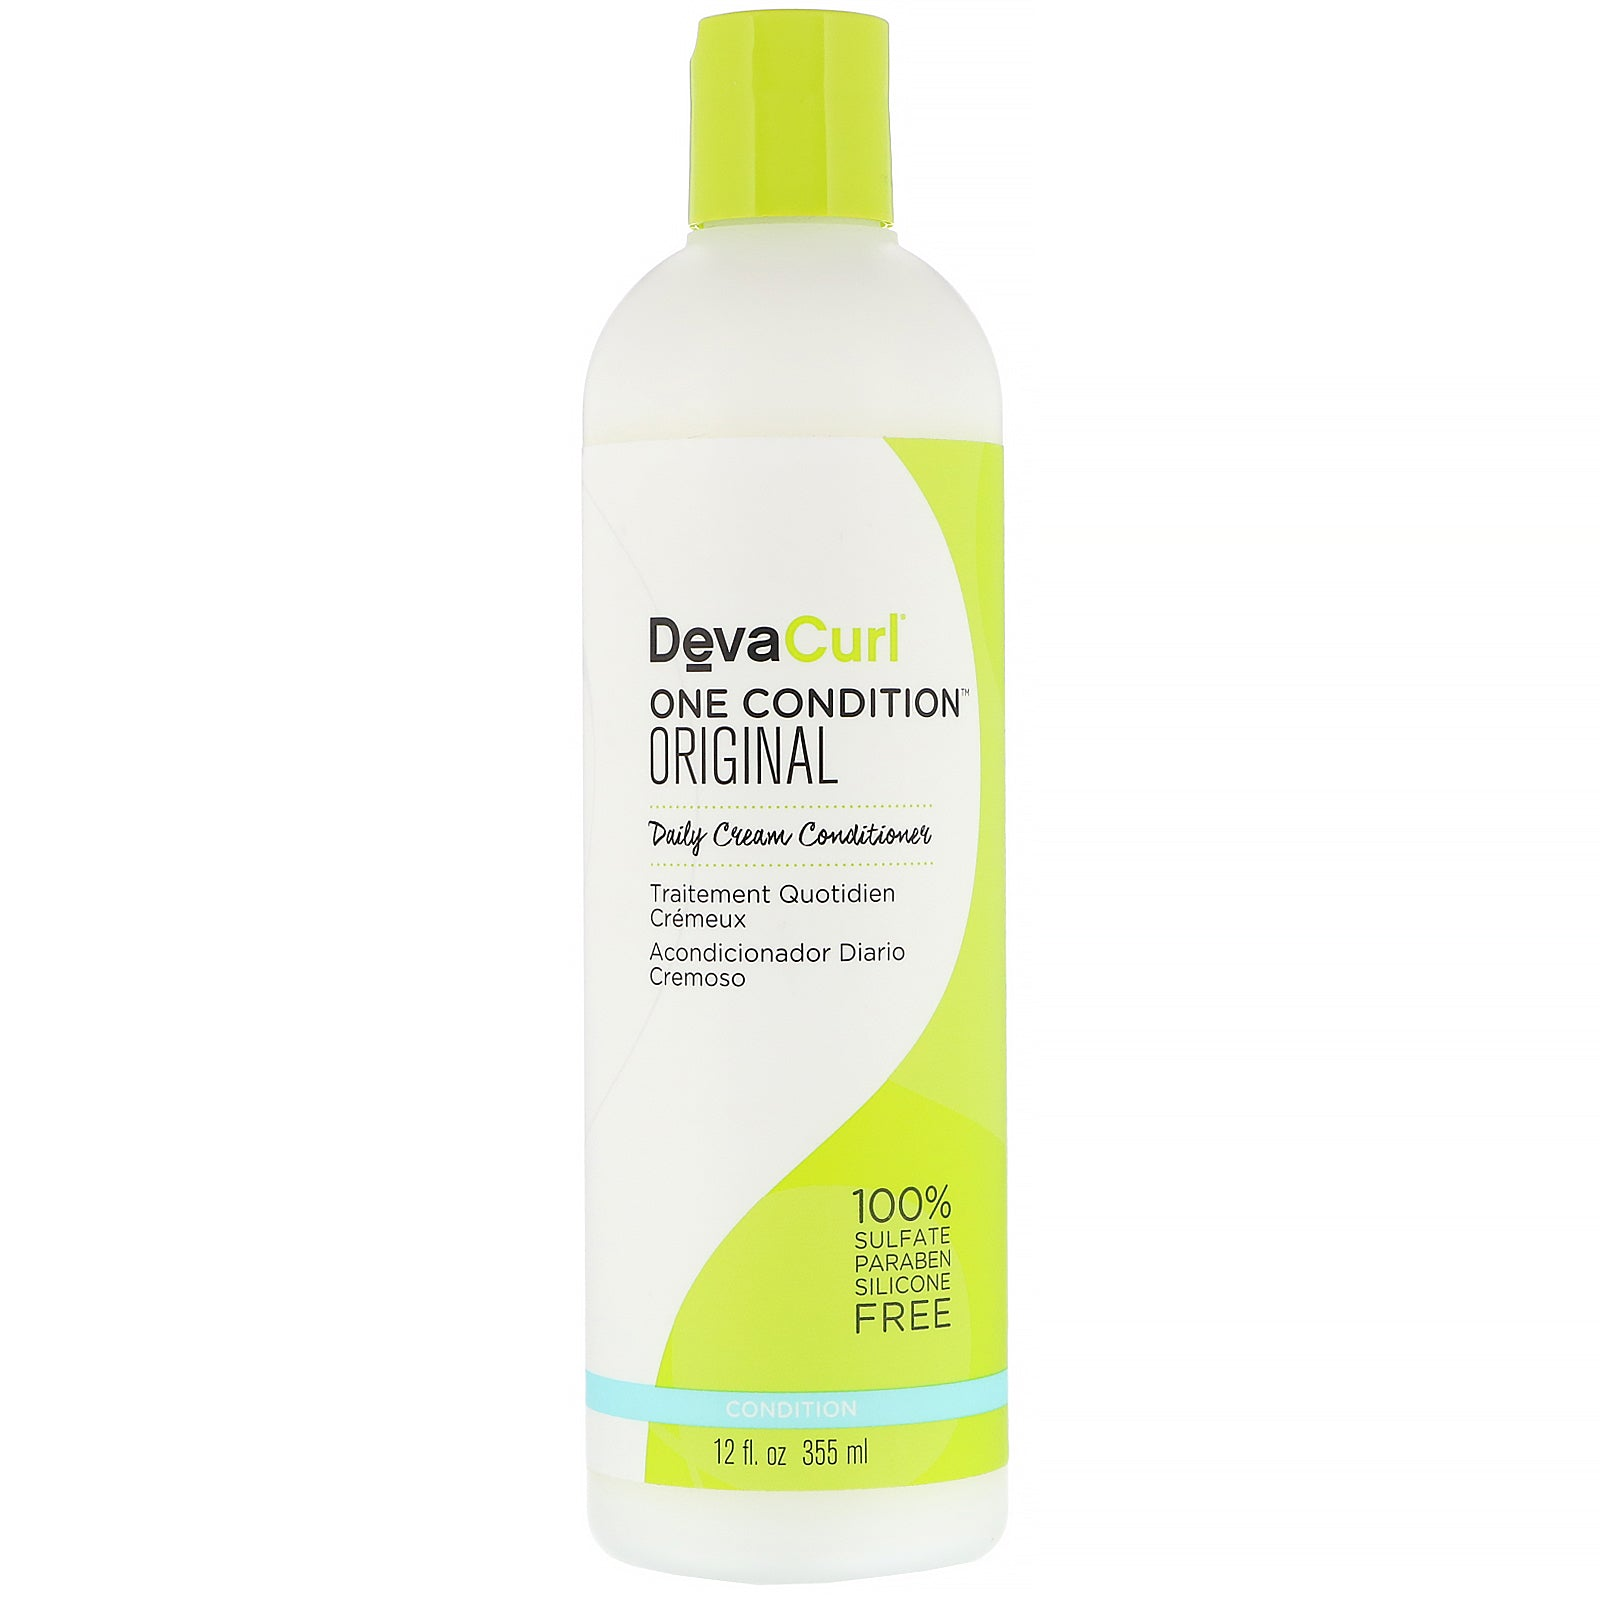 Deva Curl One Condition